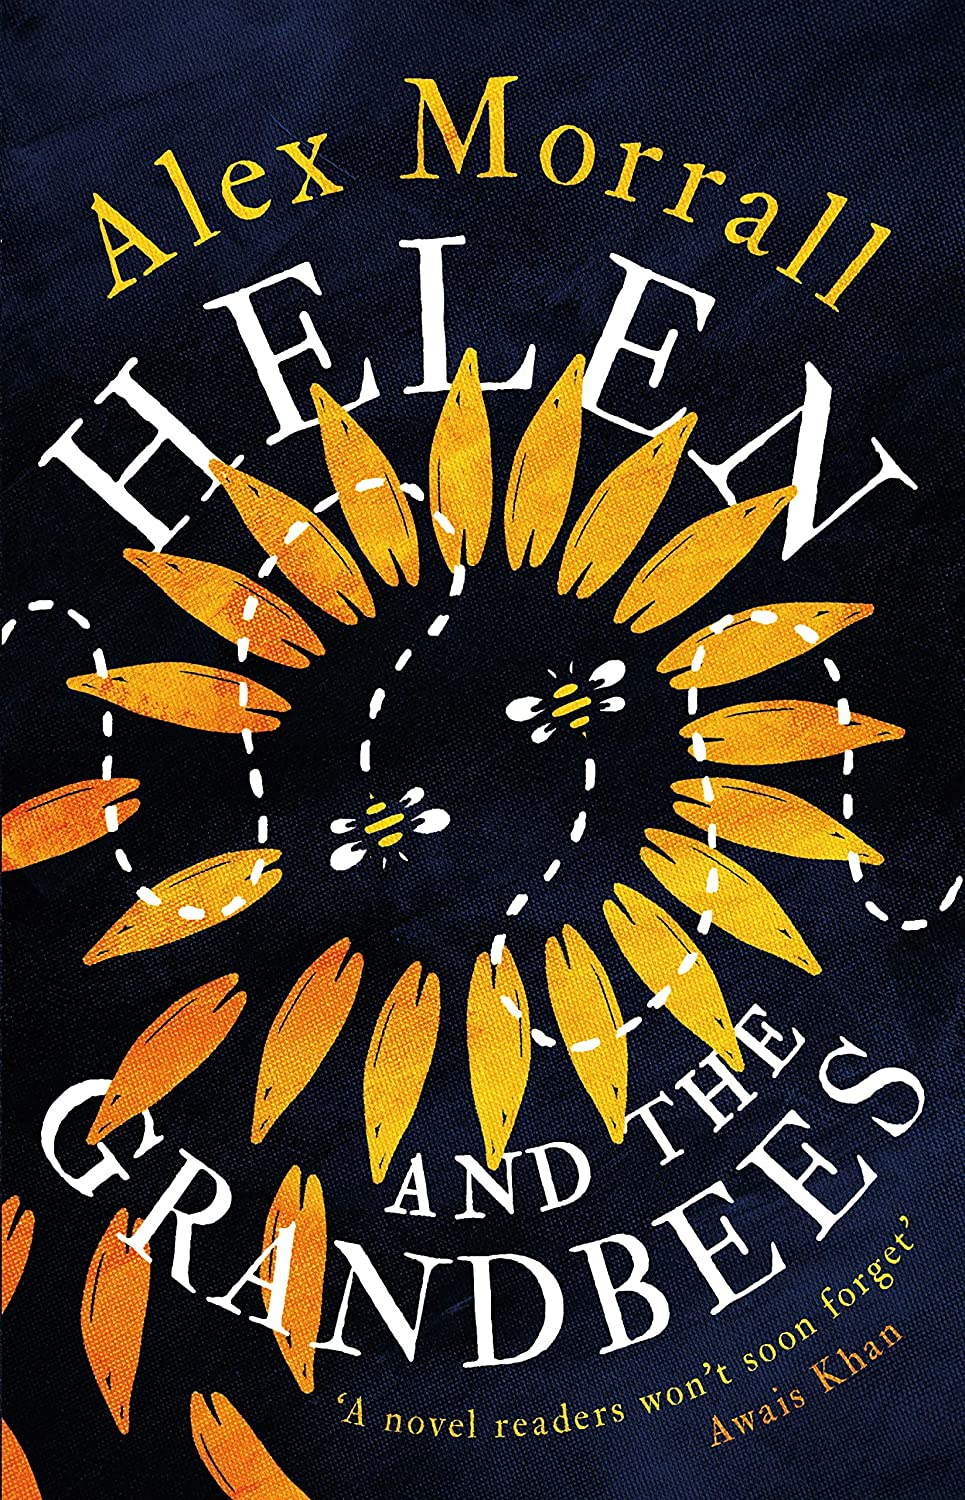 Helen and the Grandbees eBook: Morrall, Alex: Amazon.co.uk: Kindle Store